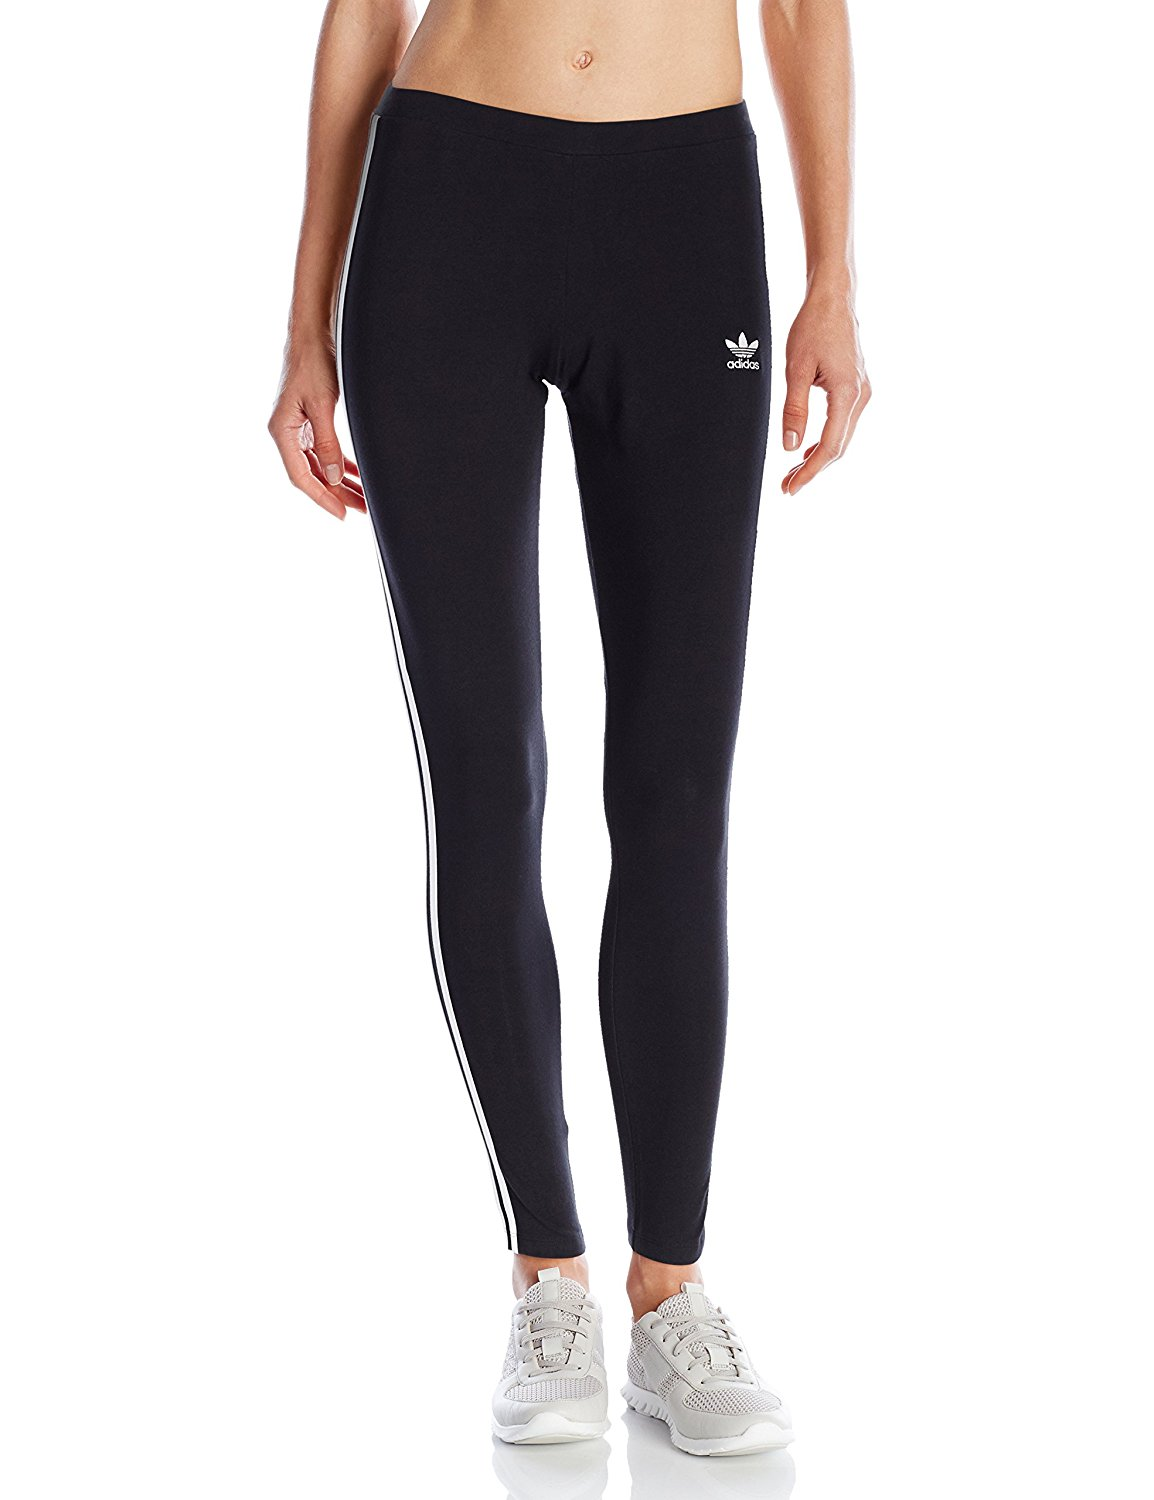 e77f0dd4bc21d adidas Originals Women's 3-Stripes Leggings at Amazon Women's ...